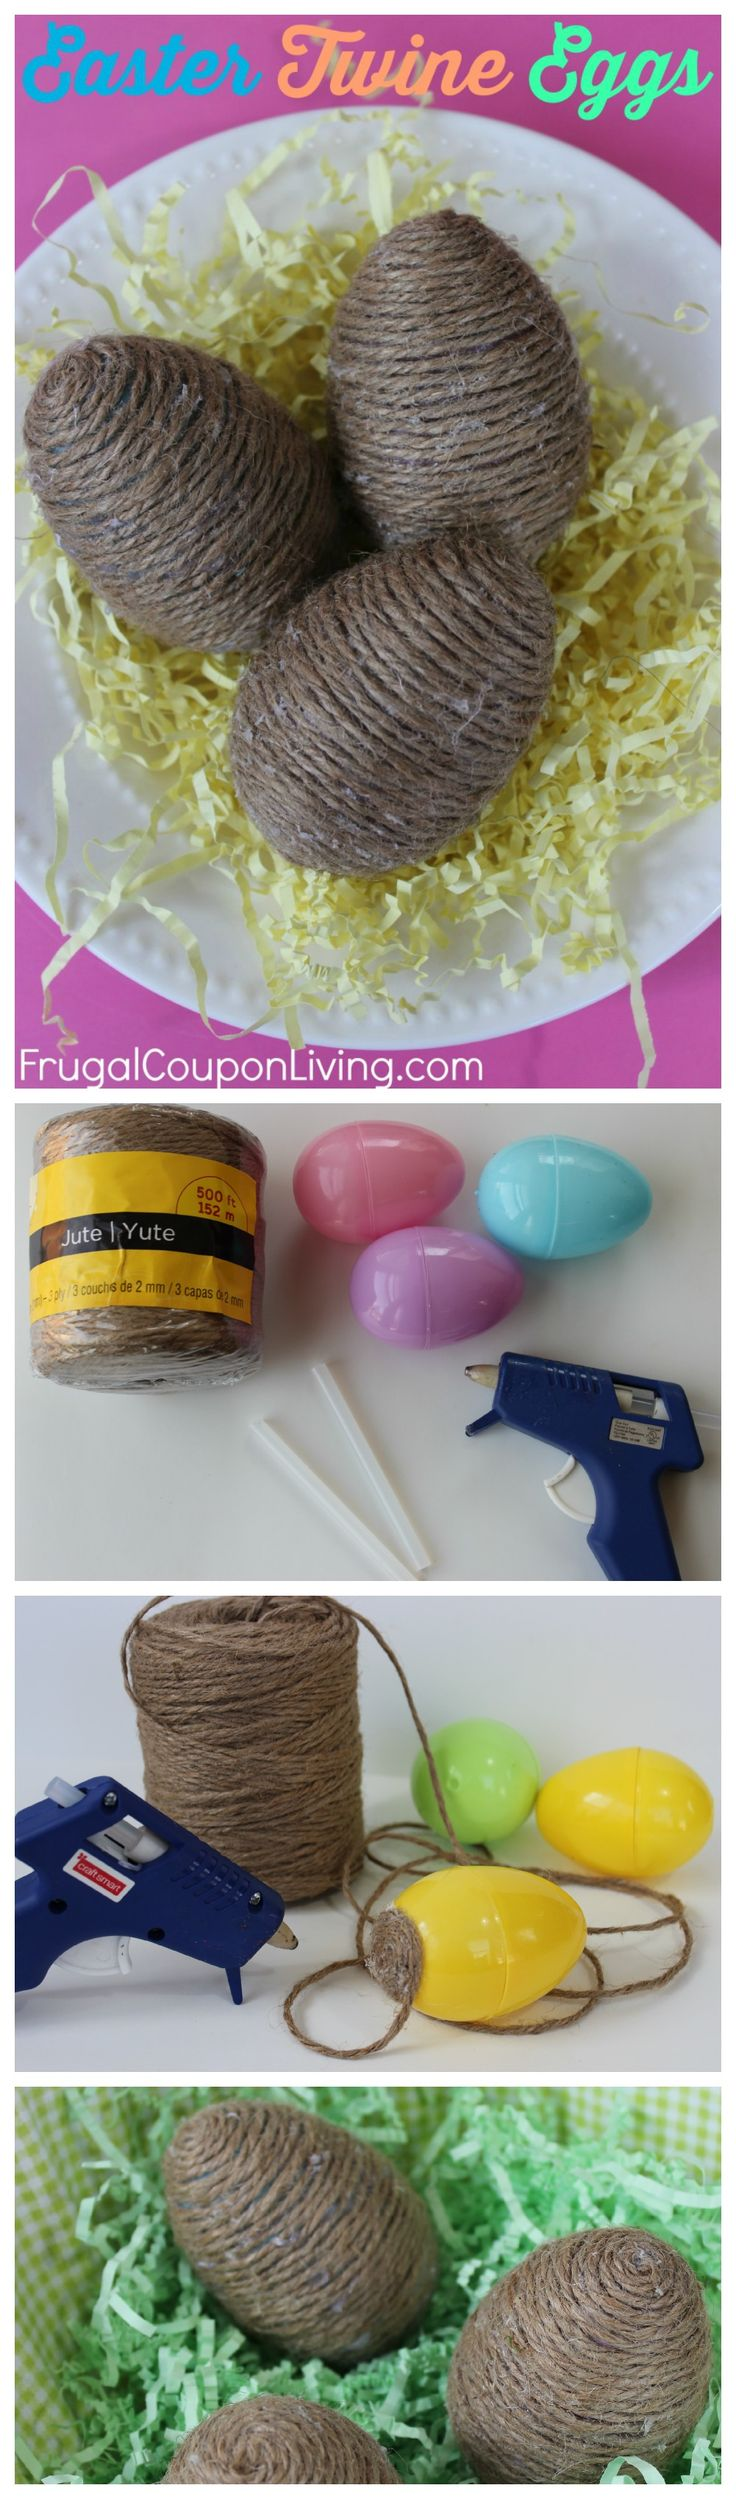 Easter Ideas - DIY Easter Twine Eggs, a Spring Dollar Store Craft on Frugal Coupon Living. Easter Crafts.